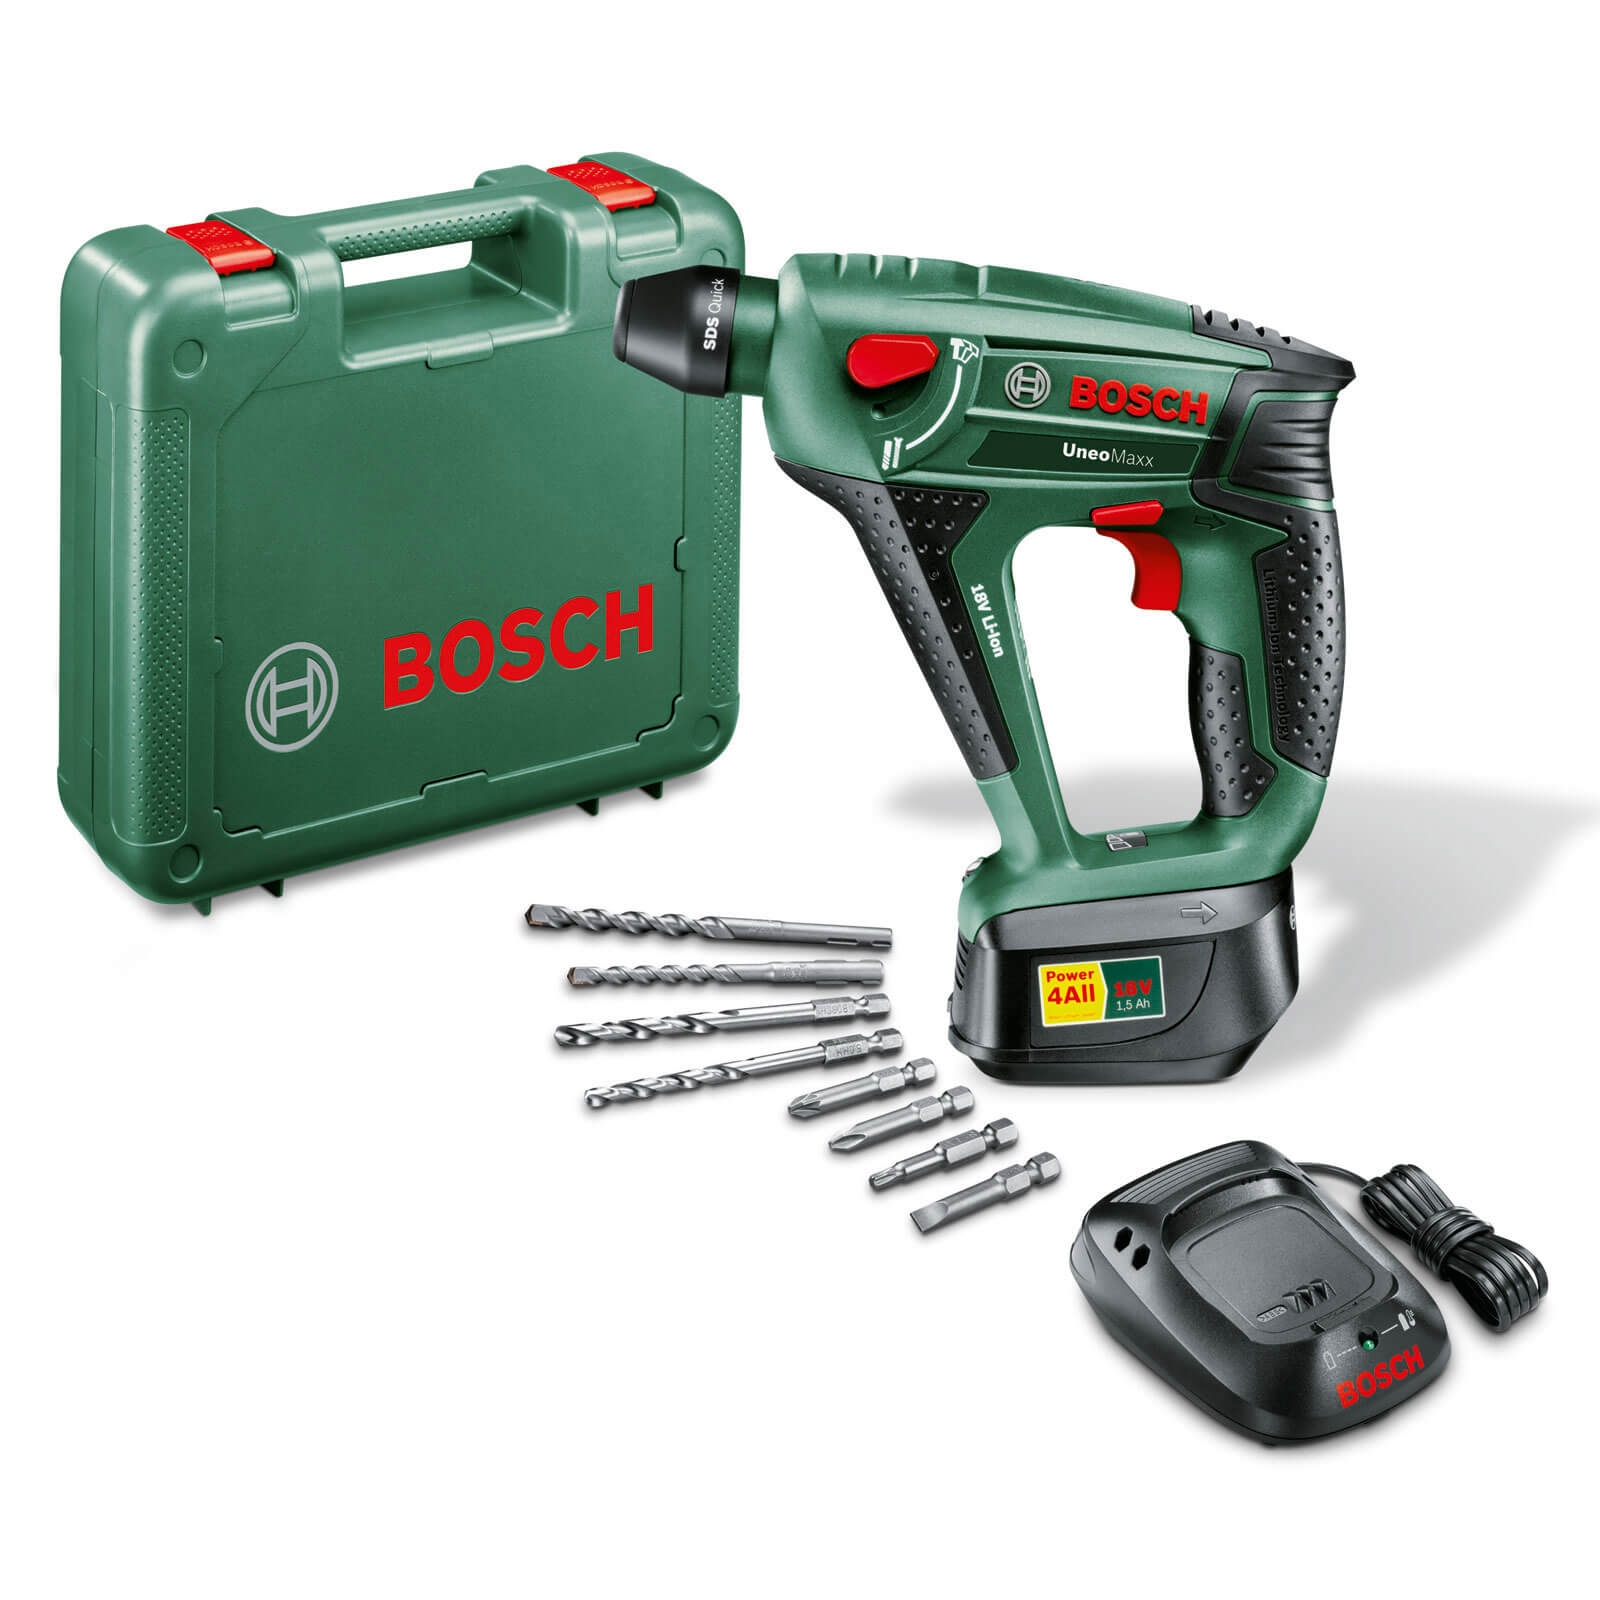 Bosch UNEO Maxx 18v Cordless Combi Drill 1 x 2ah Liion Charger Case